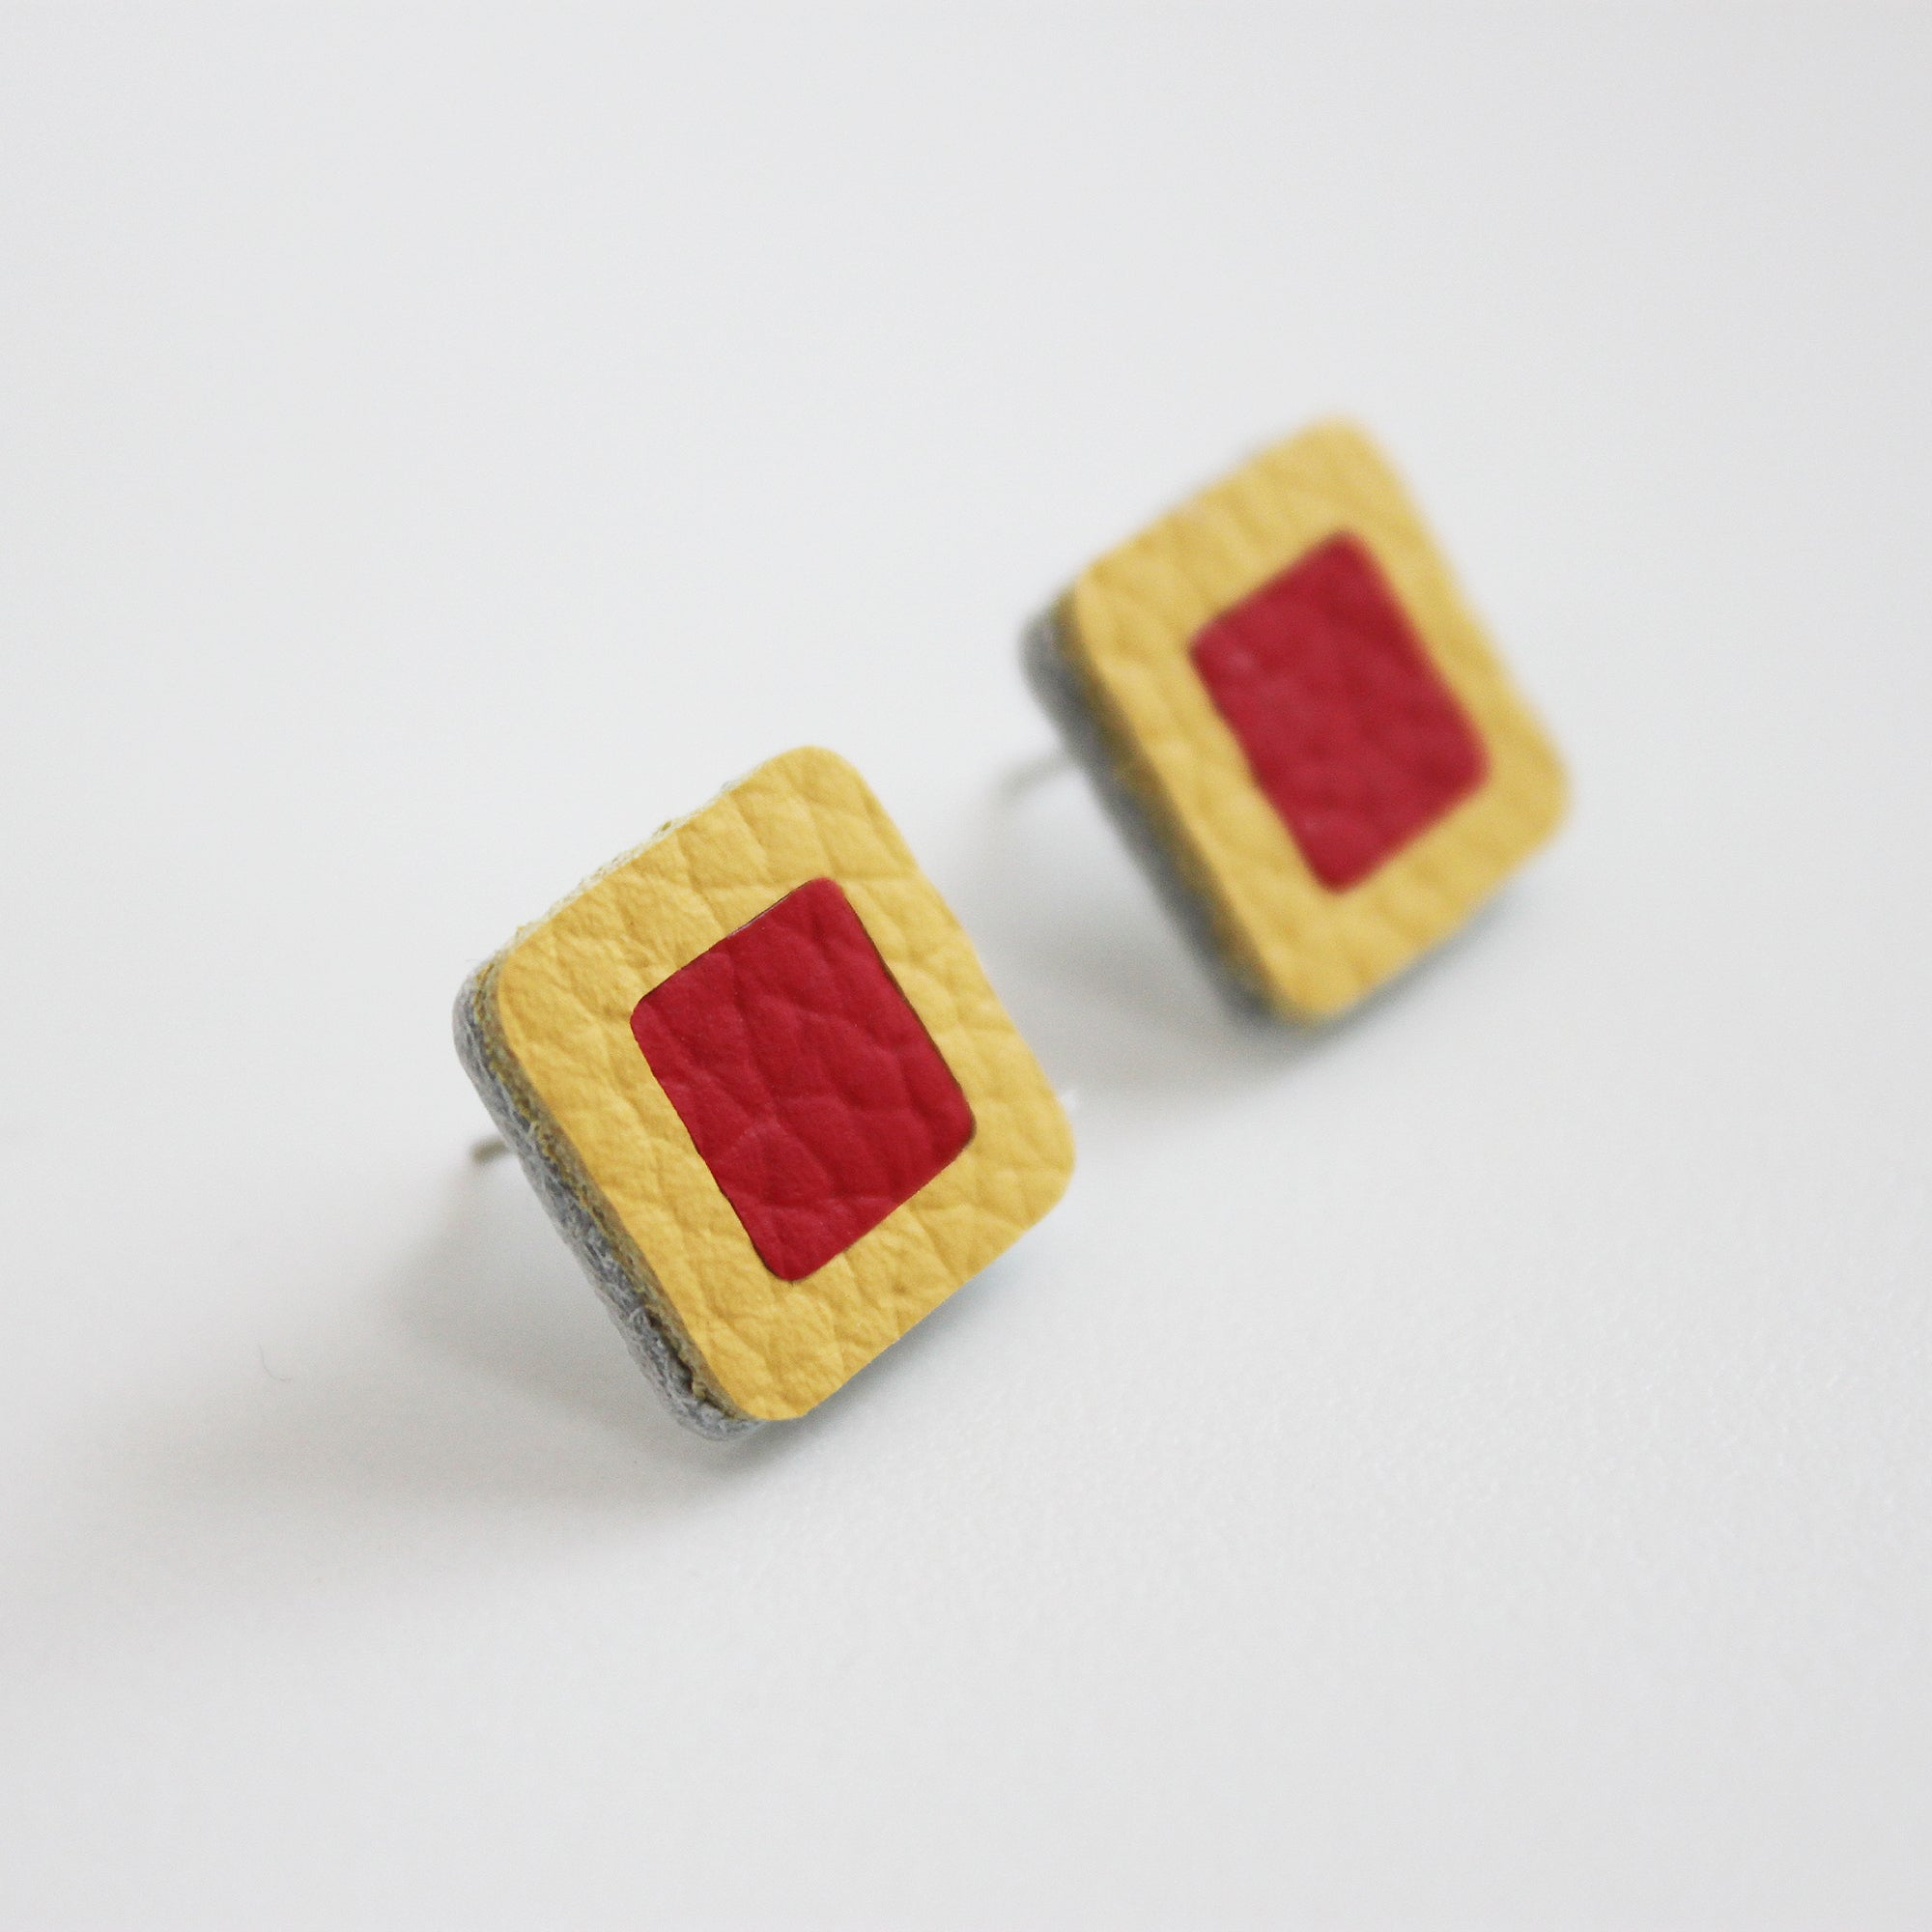 Square leather stud earring - Inspired